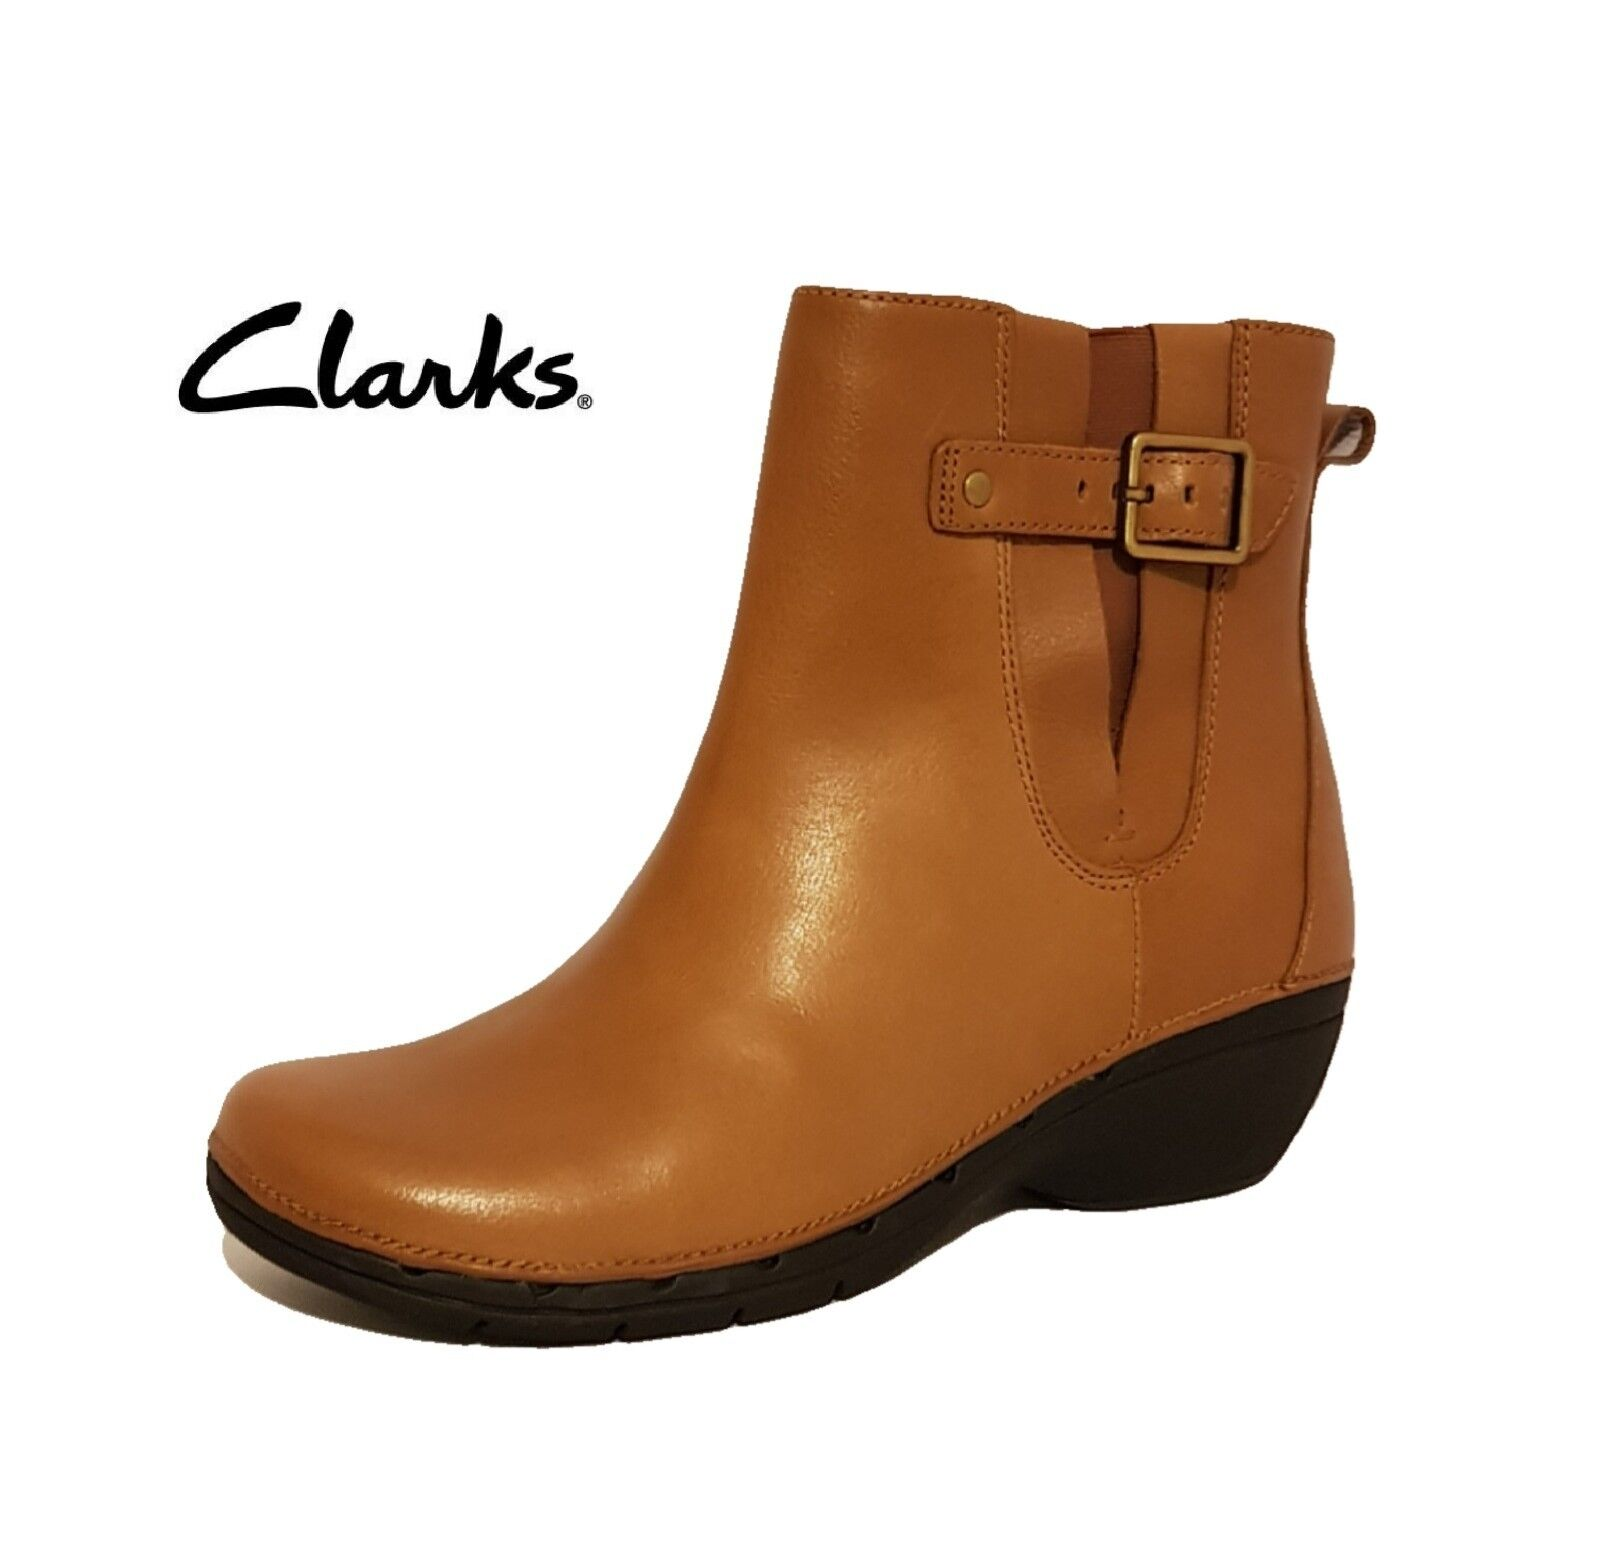 e8863601519 Nuevo CLARKS UNSTRUCTURED un desfile en Marrón Genuino leatherr Tobillo Botas  Damas